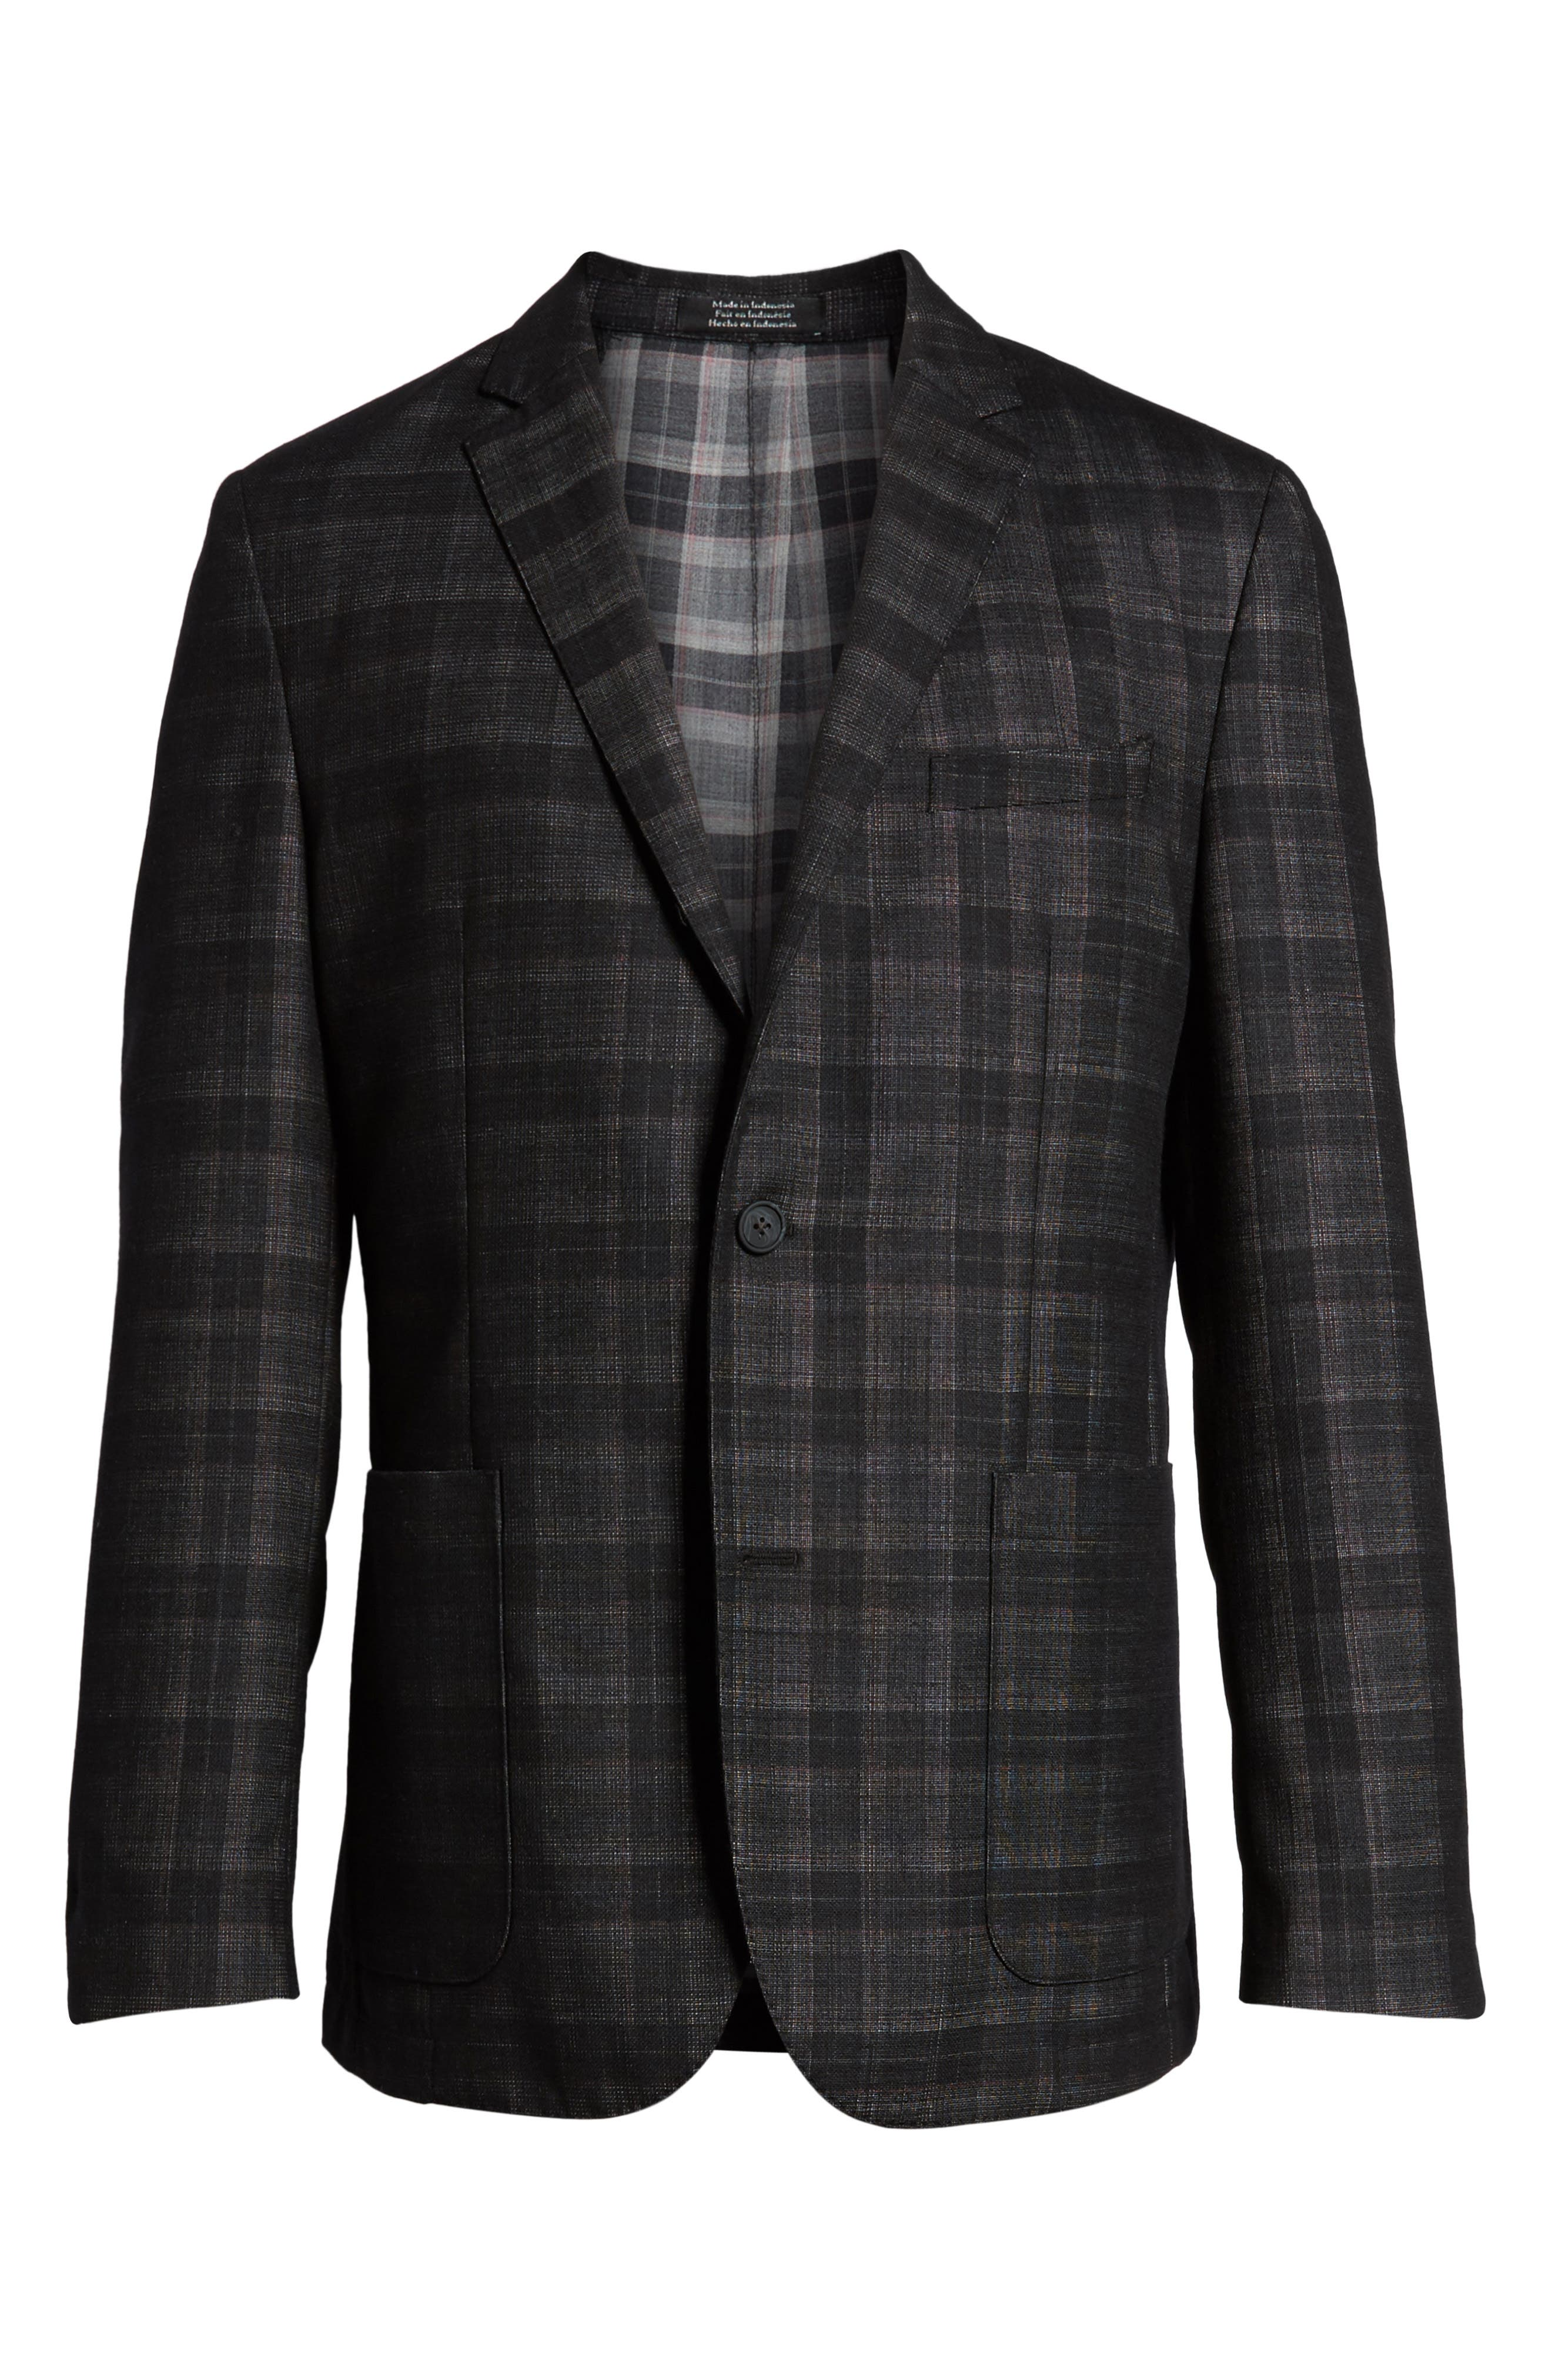 Delaria Plaid Wool Blend Jacket,                             Alternate thumbnail 5, color,                             001